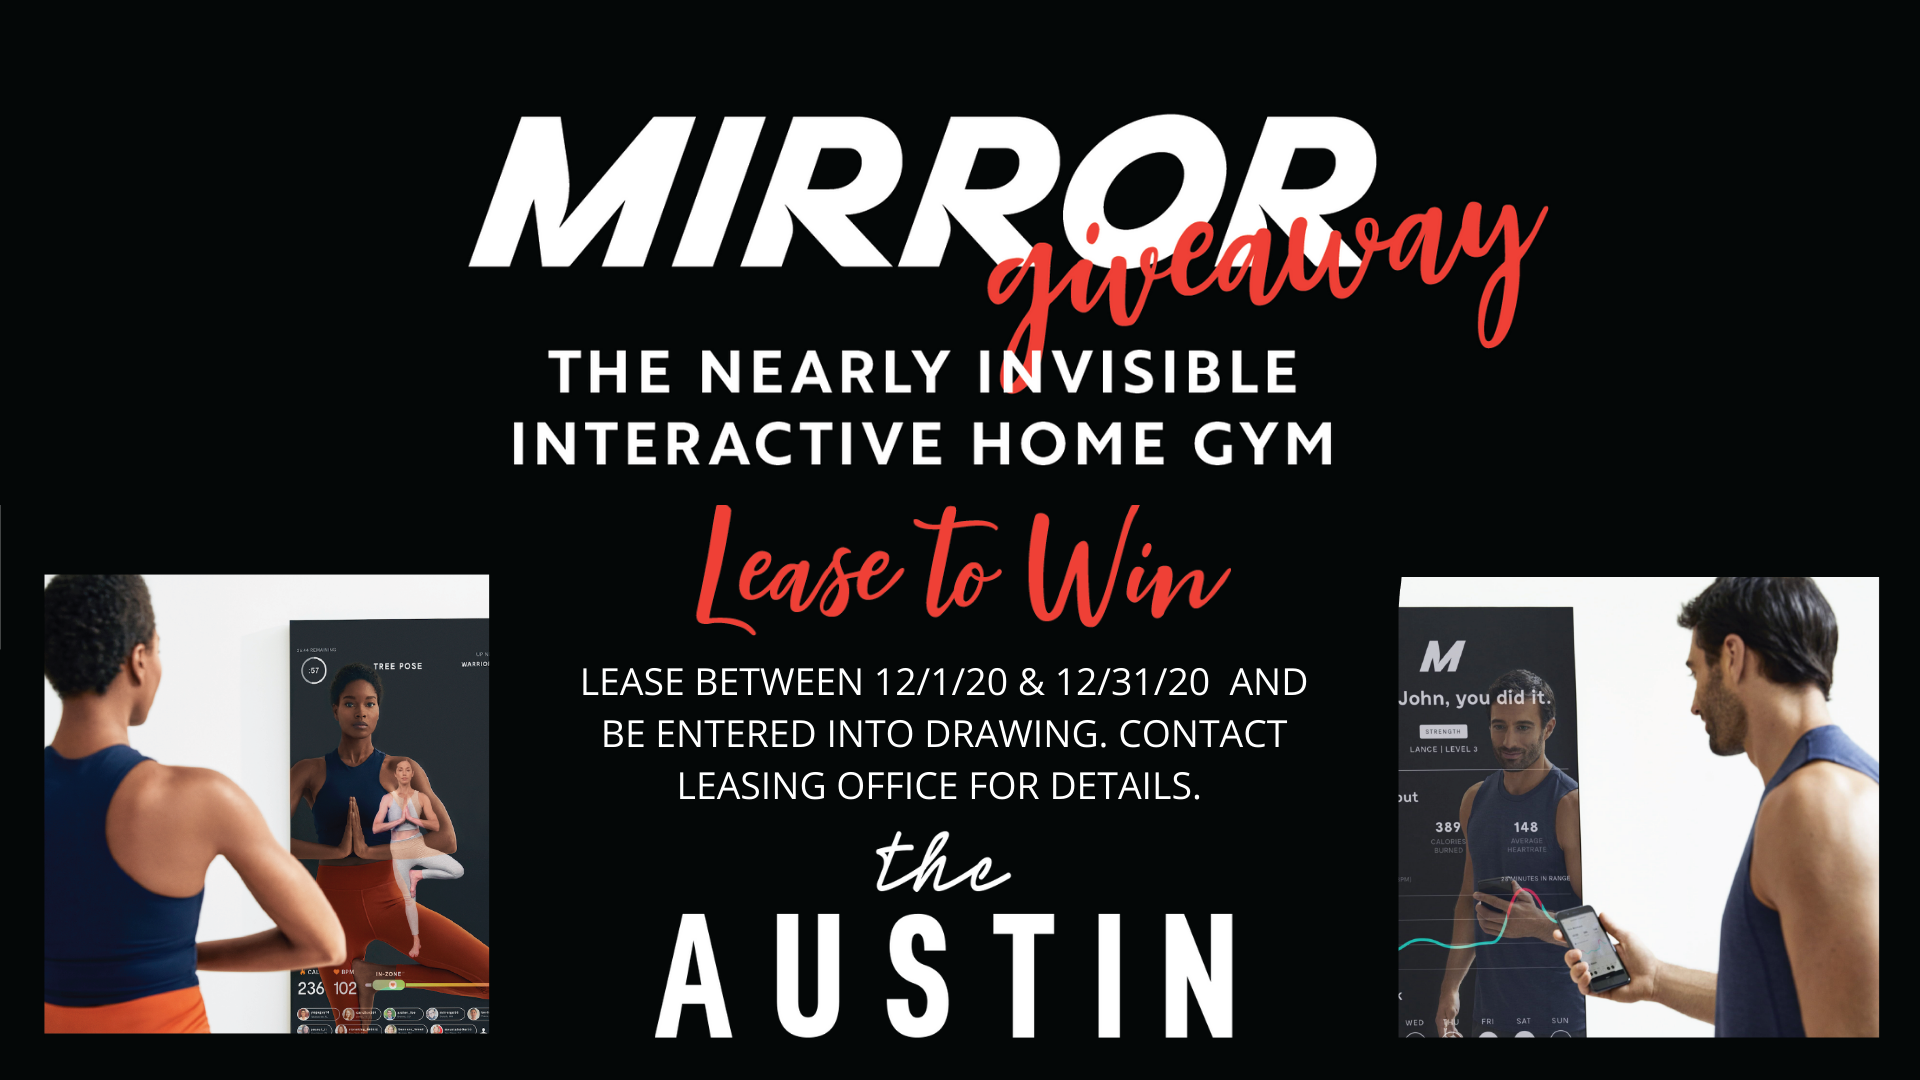 Mirror Giveaway. The nearly invisible interactive home gym. Lease to win. Lease between 12 01 20 and 12 31 20 and be entered into drawing. Contact leasing office for details. The Austin.